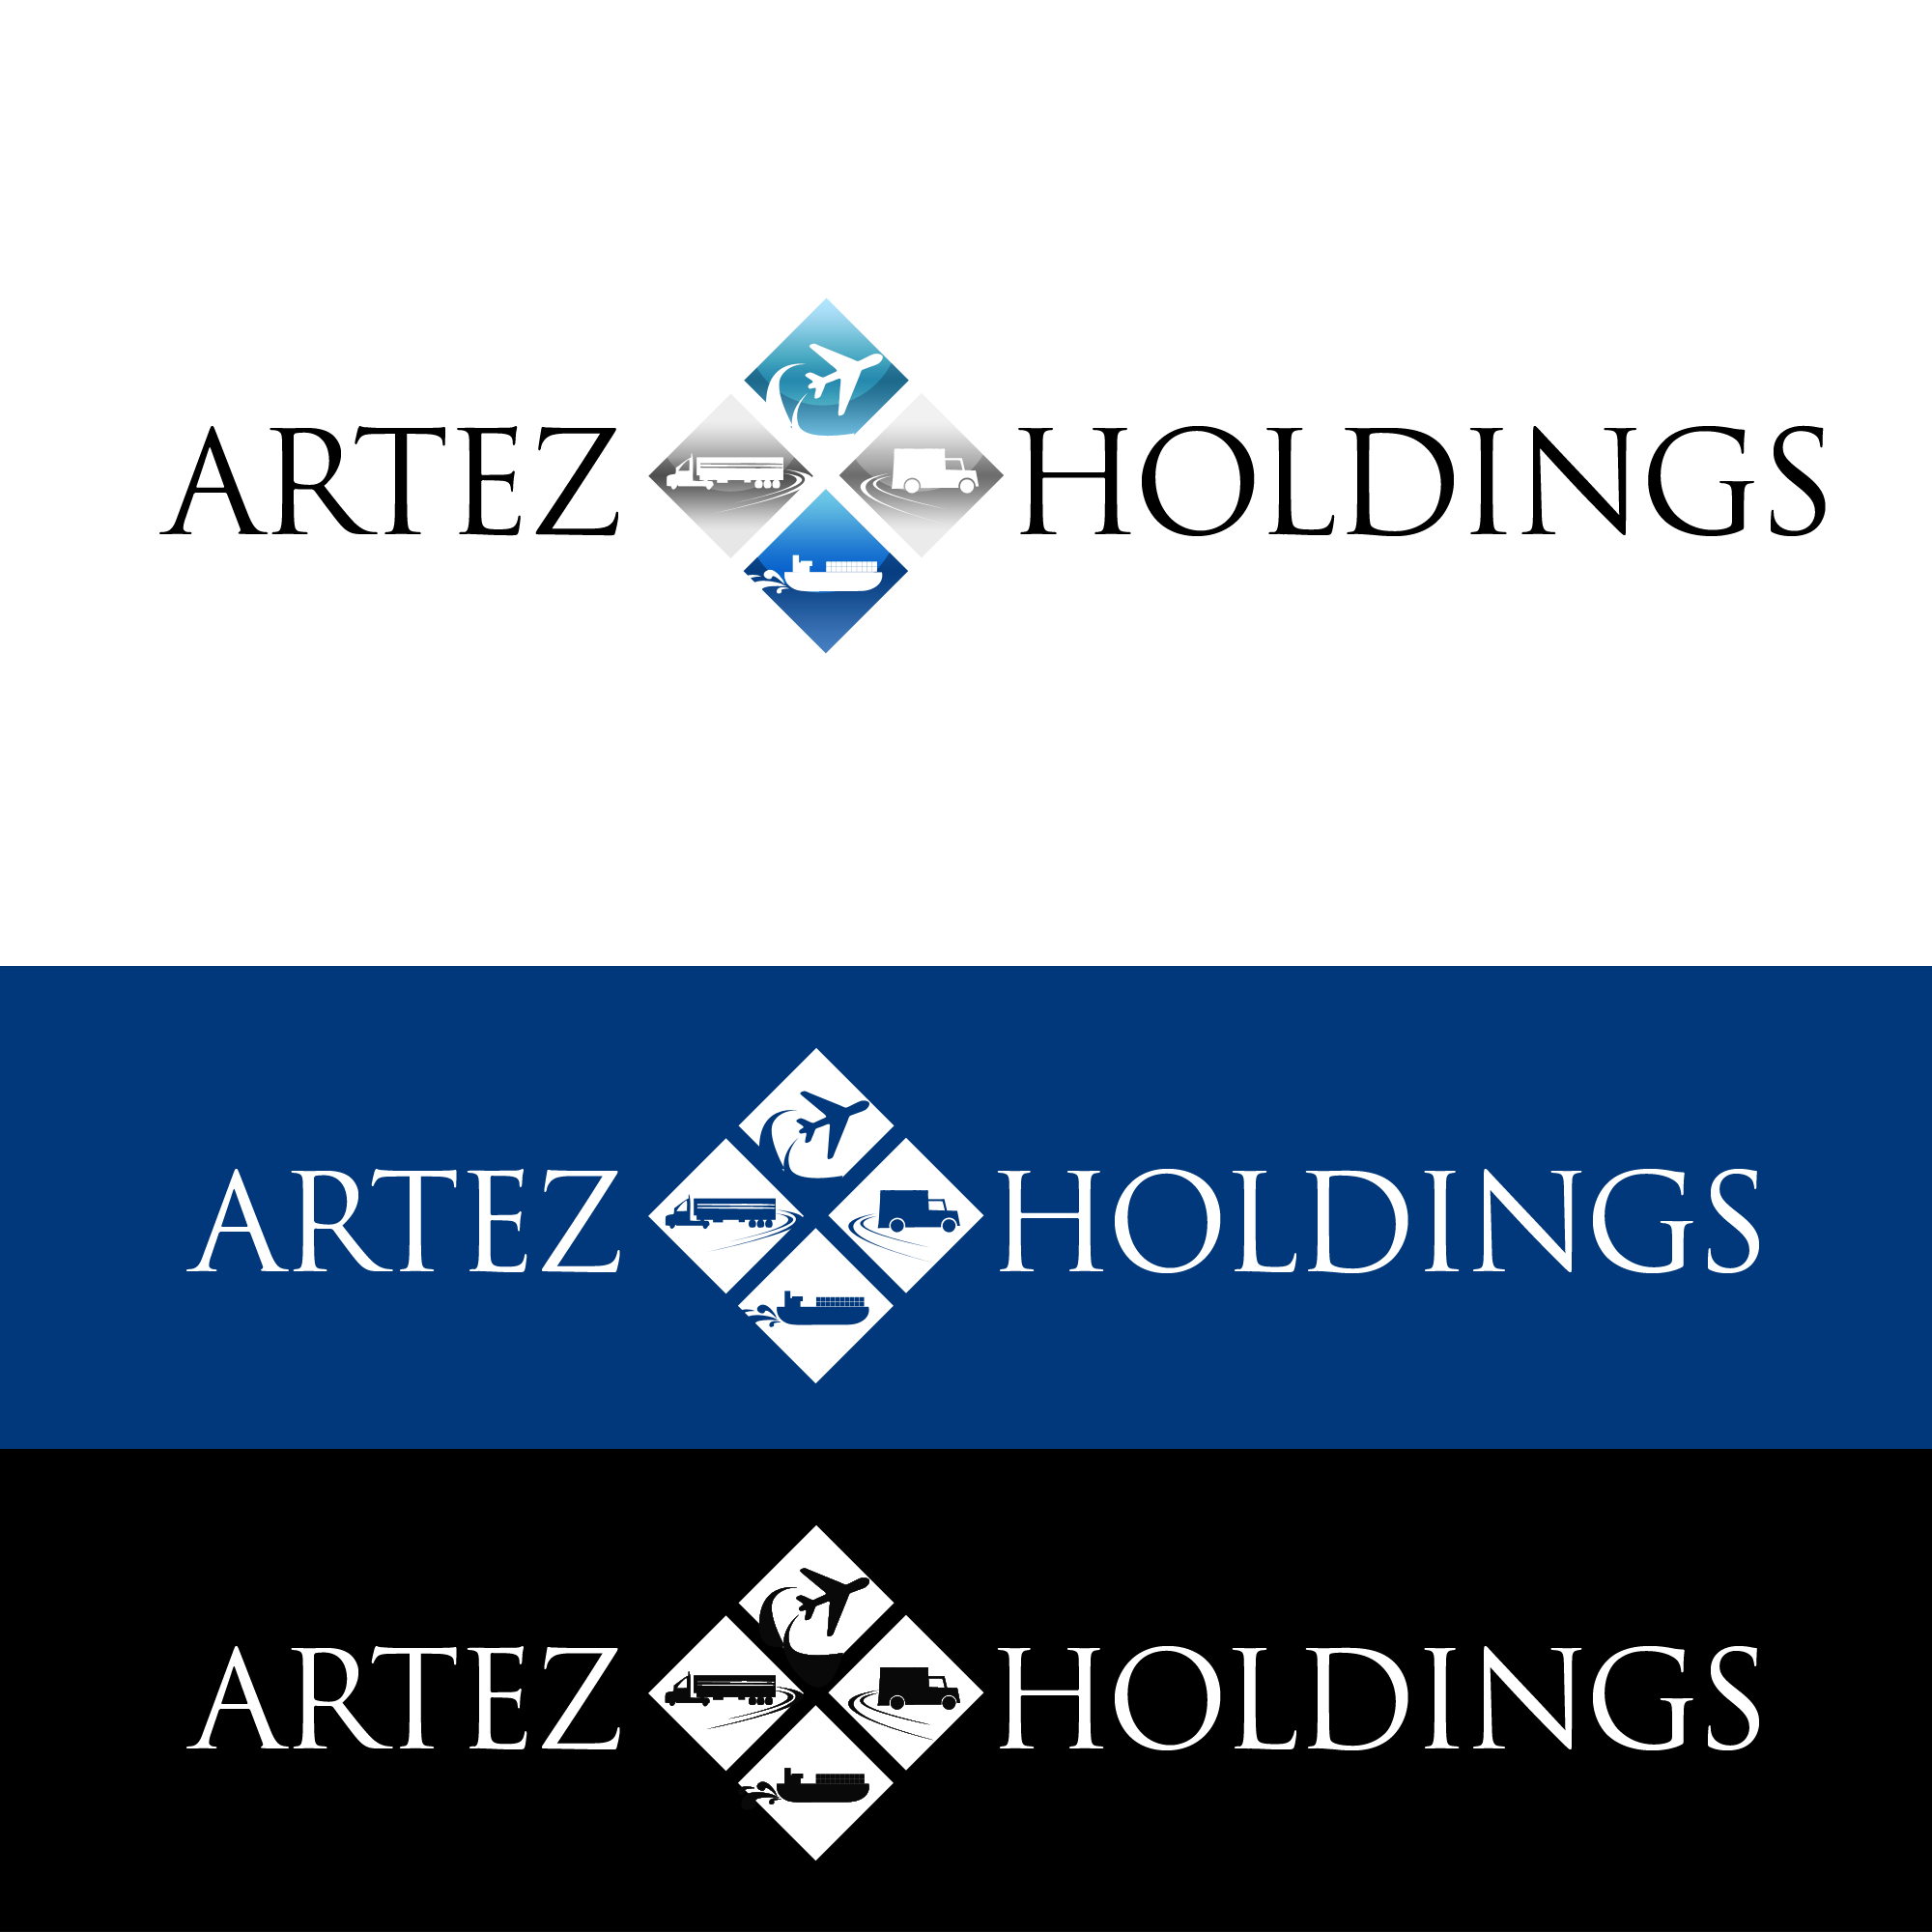 Logo Design by Kenneth Joel - Entry No. 21 in the Logo Design Contest New Logo Design for Artez Holdings.